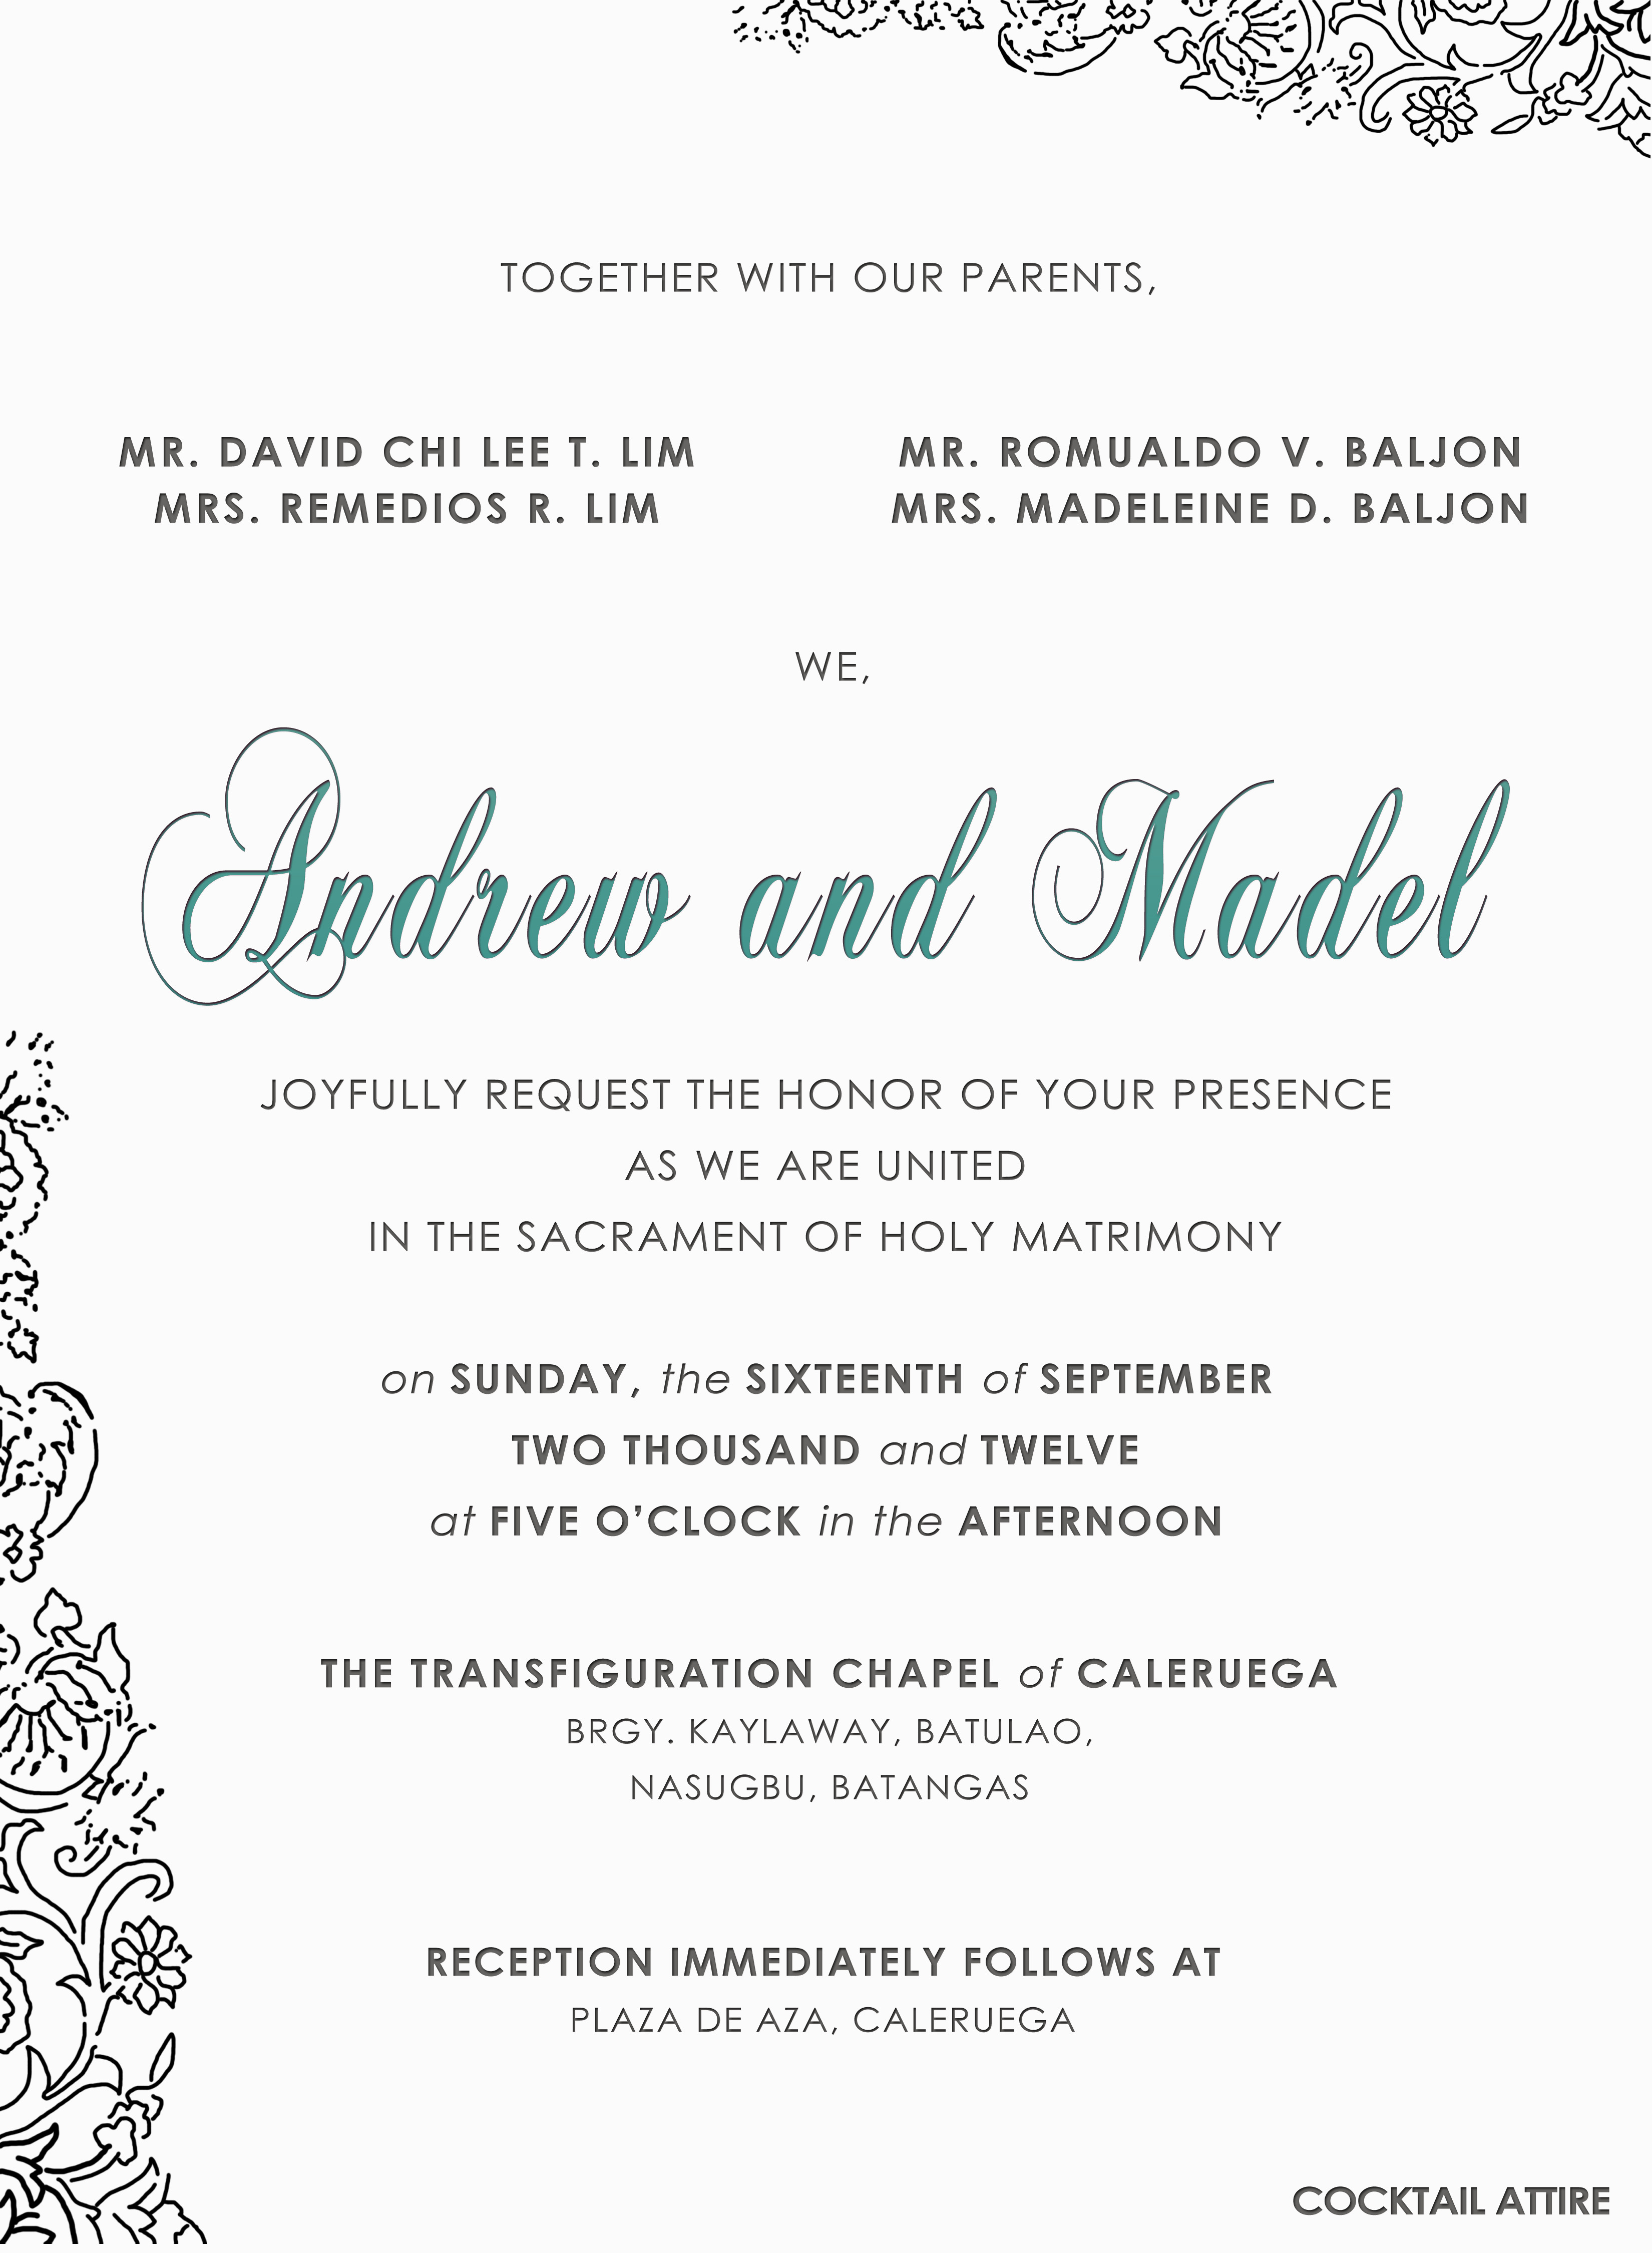 DIY Invitation  Andrew  Madel The Wedding